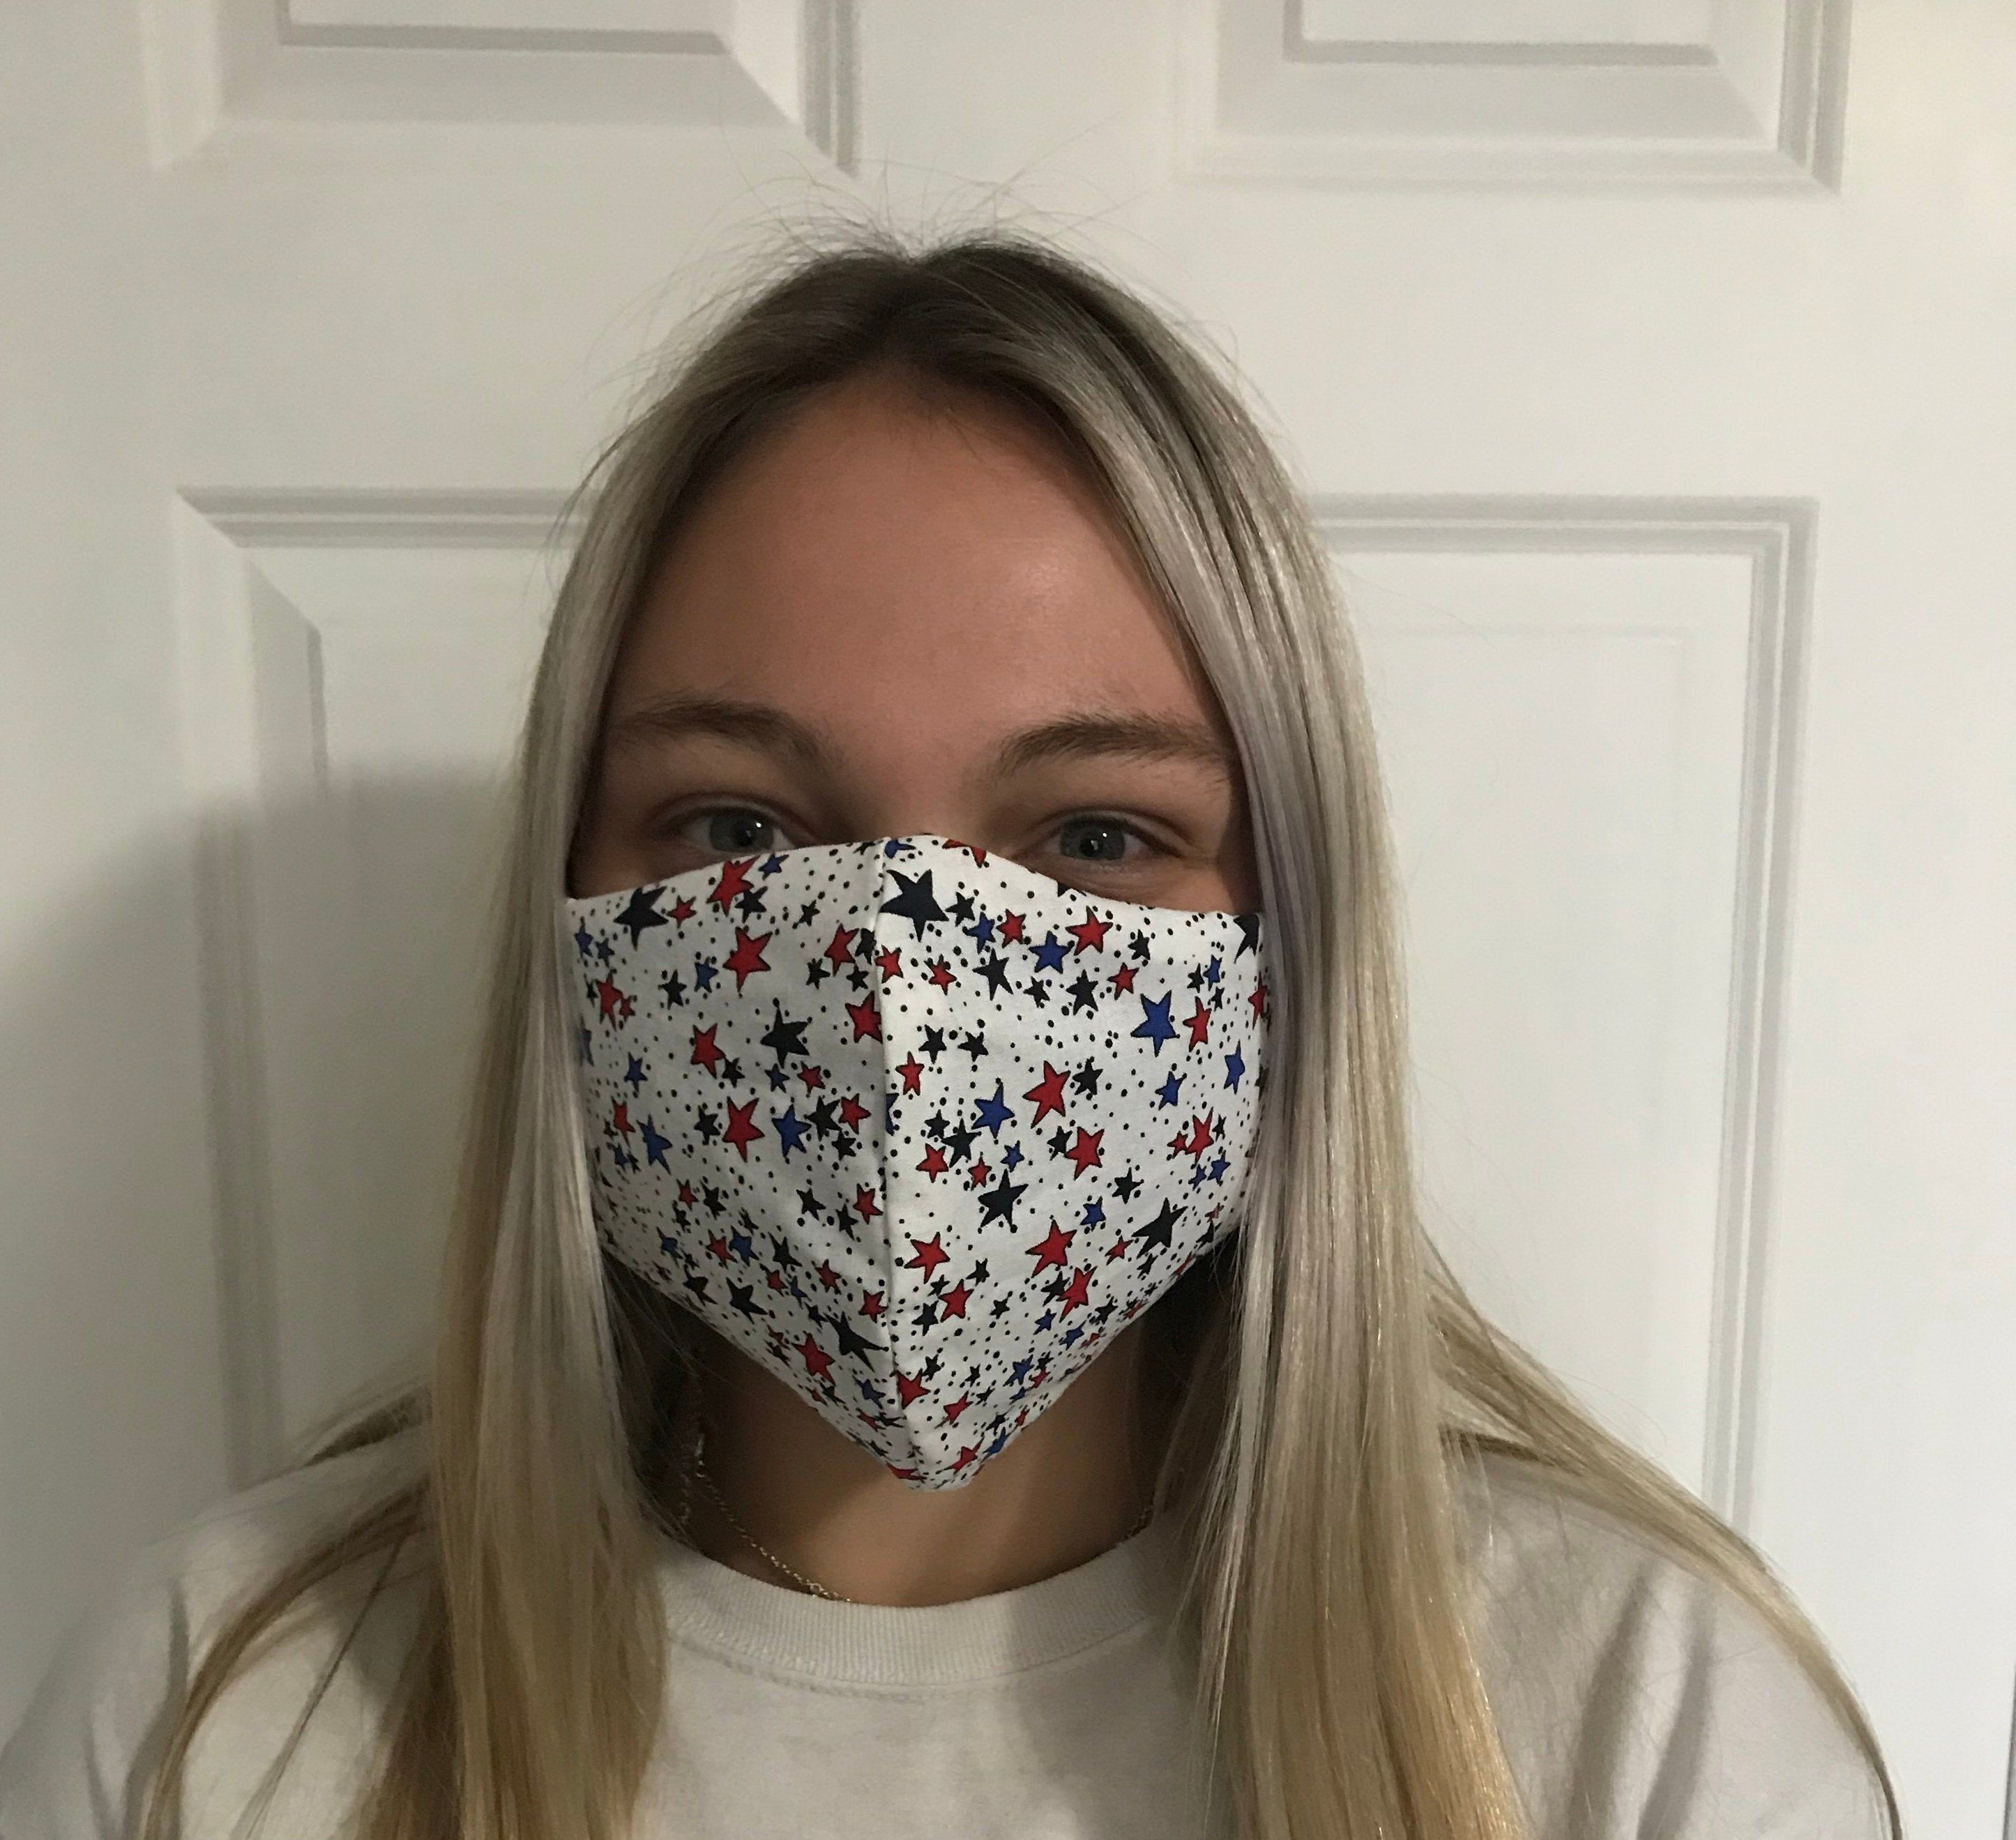 Photo of Soft Face Mask Womens Face Mask High Quality Face Mask | Etsy